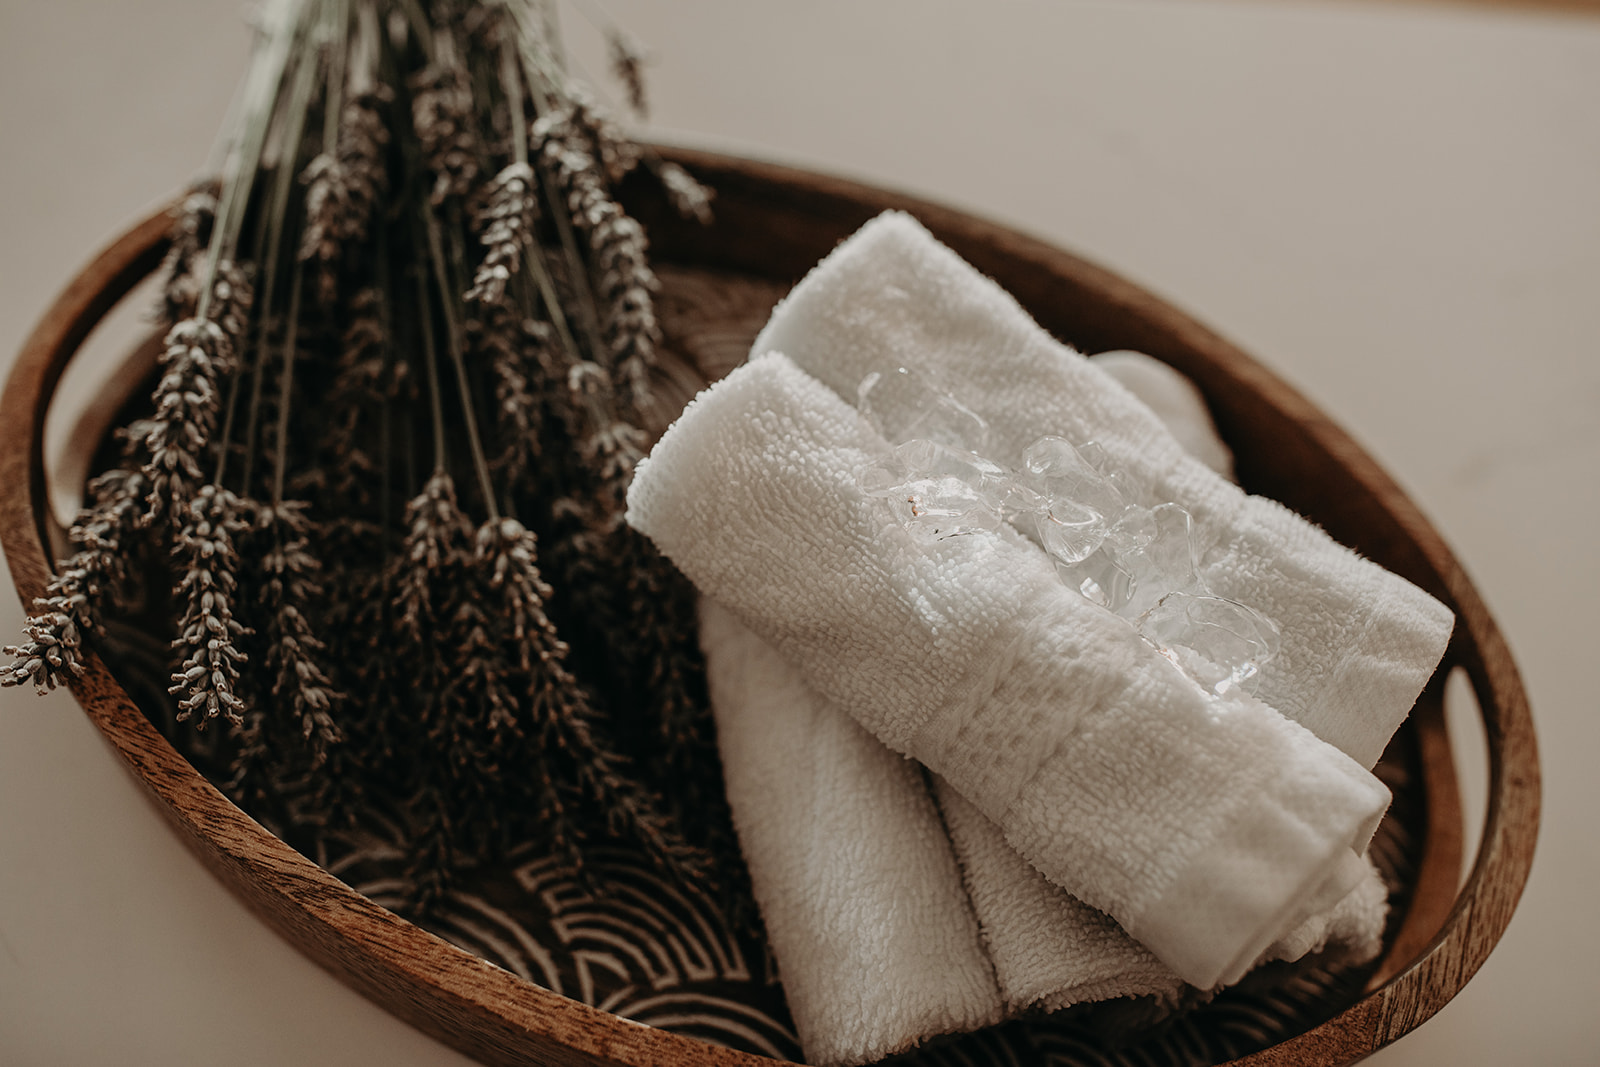 After a long workout, please enjoy a refreshing cold essential-oil infused towel at the end of each class to soothe, calm and cool your body.  Dry towels also are provided before, during and after class!